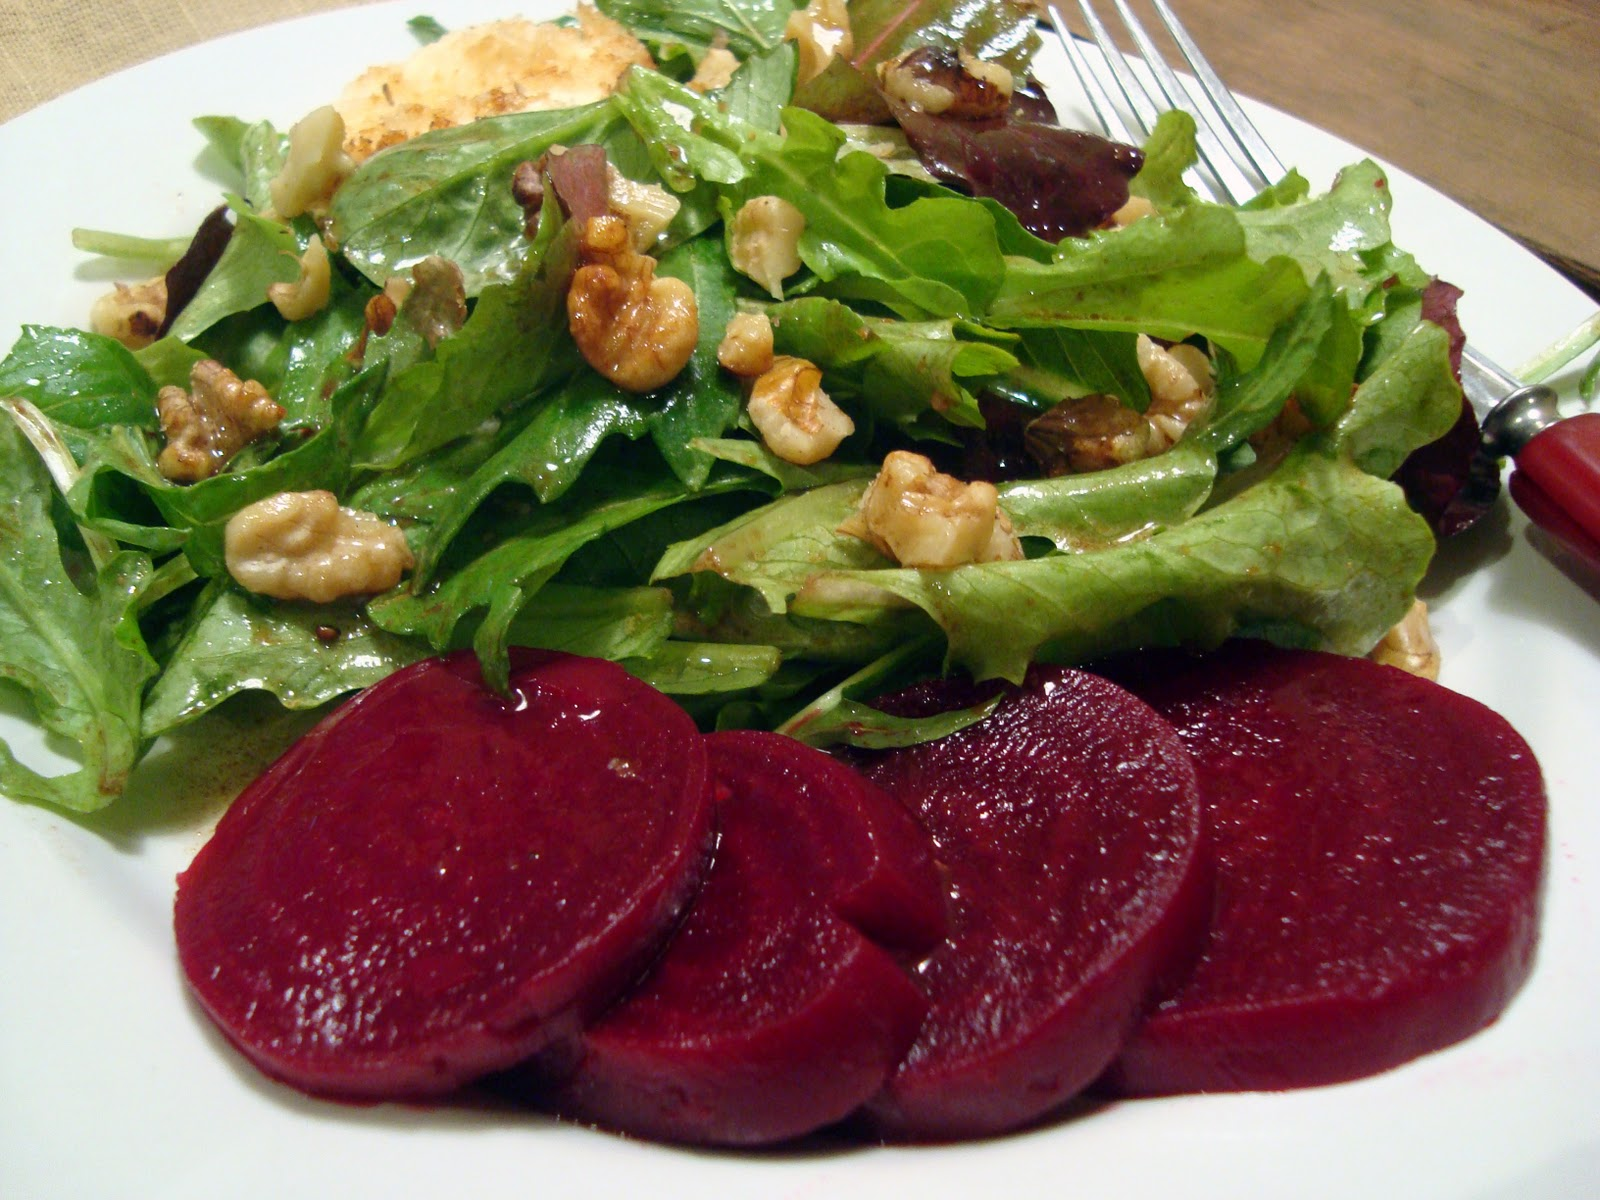 Headspace: Pickled Beets and a Simple Salad